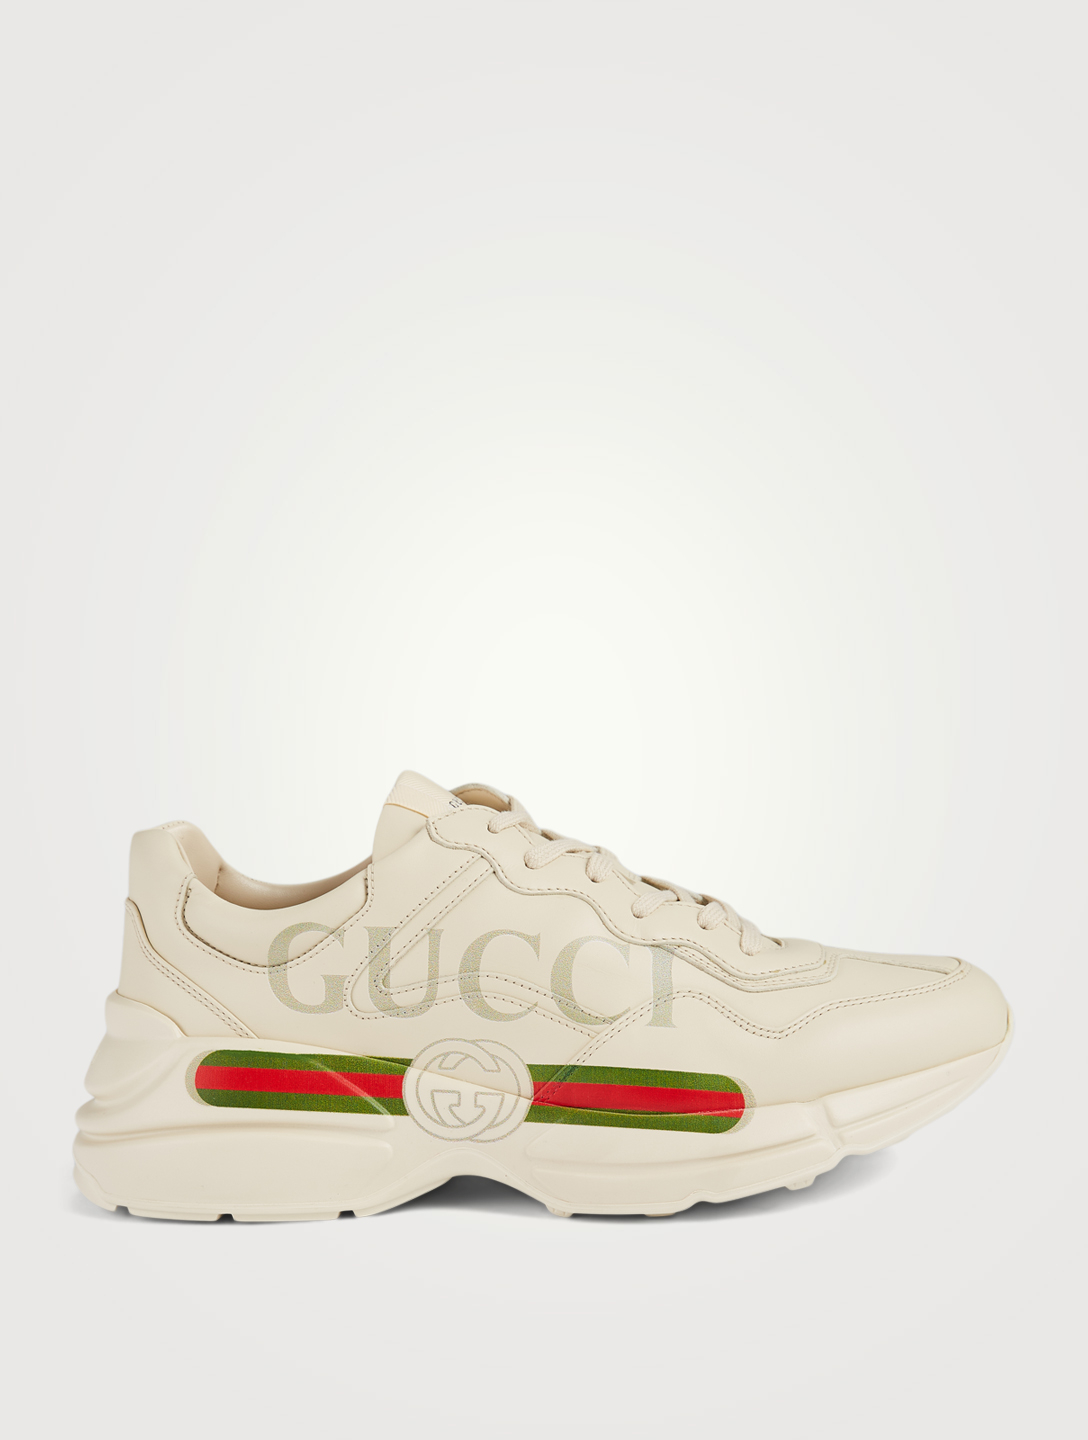 eed447242f5 GUCCI Rhyton Leather Sneakers With Logo Men s White ...